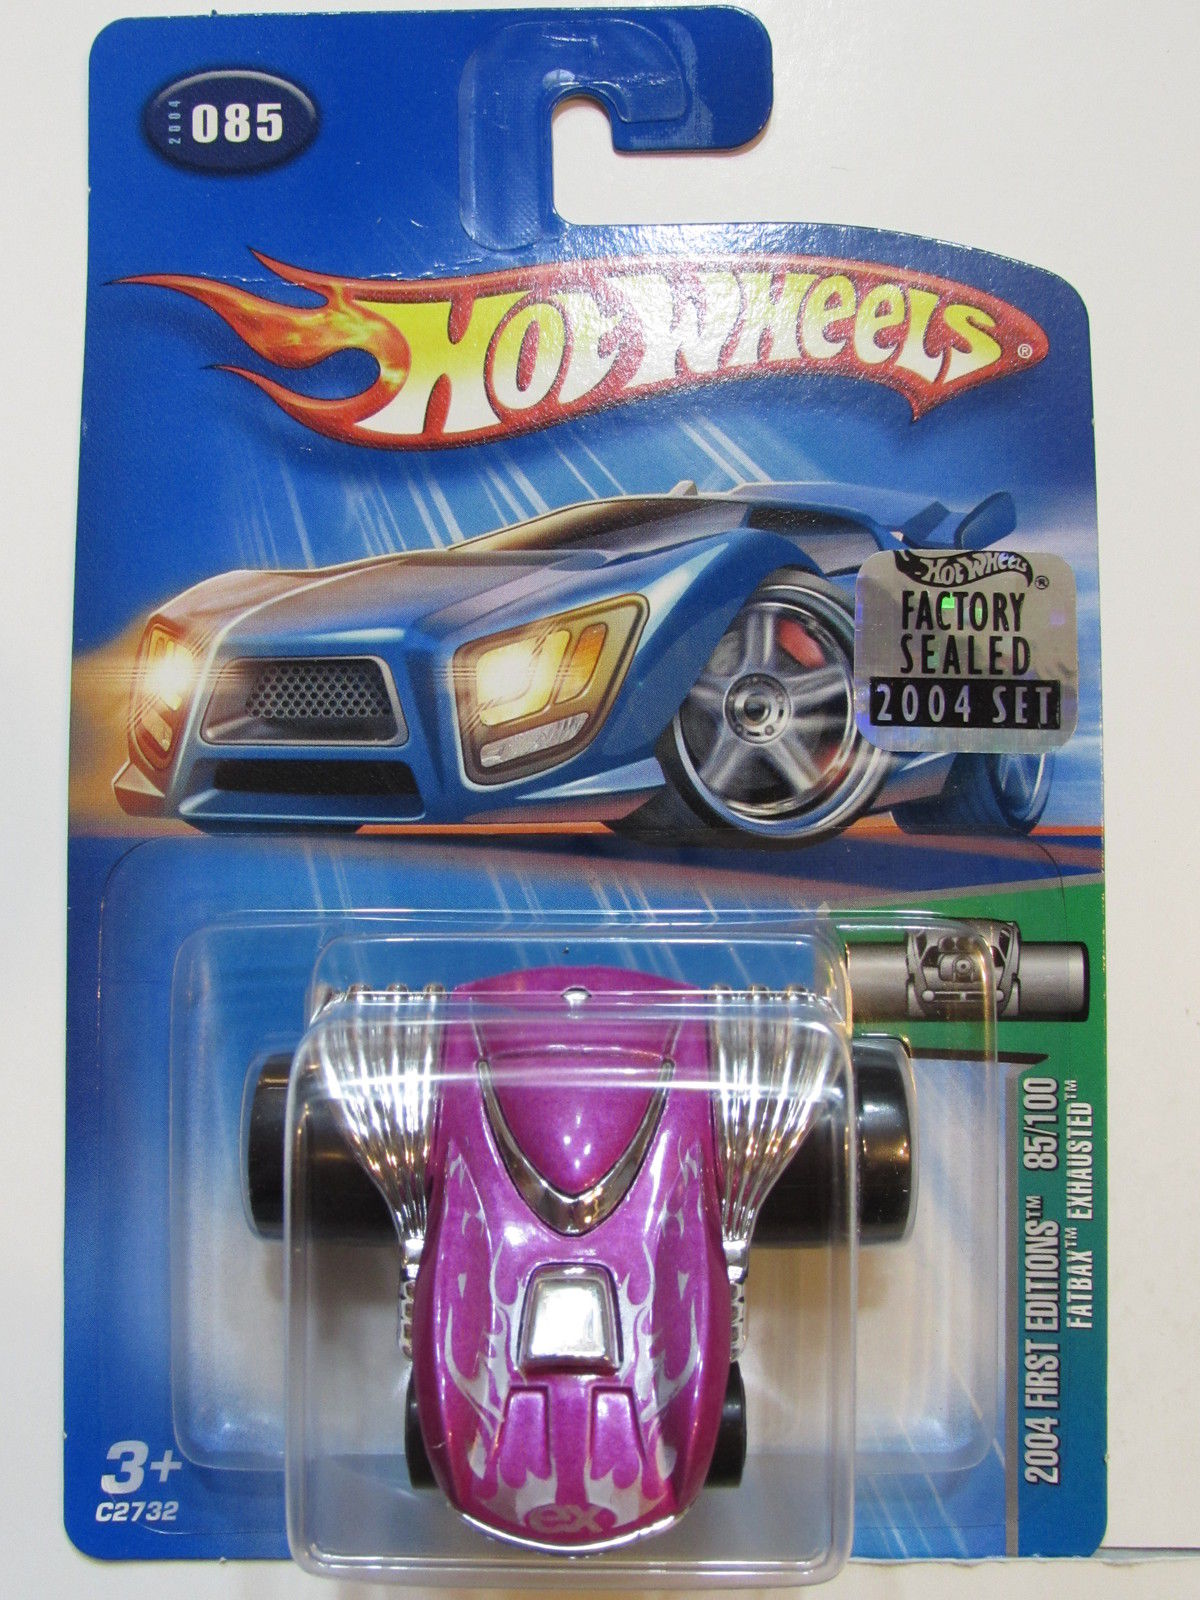 HOT WHEELS 2004 FIRST EDITIONS FATBAX EXHAUSTED #085 FACTORY SEALED